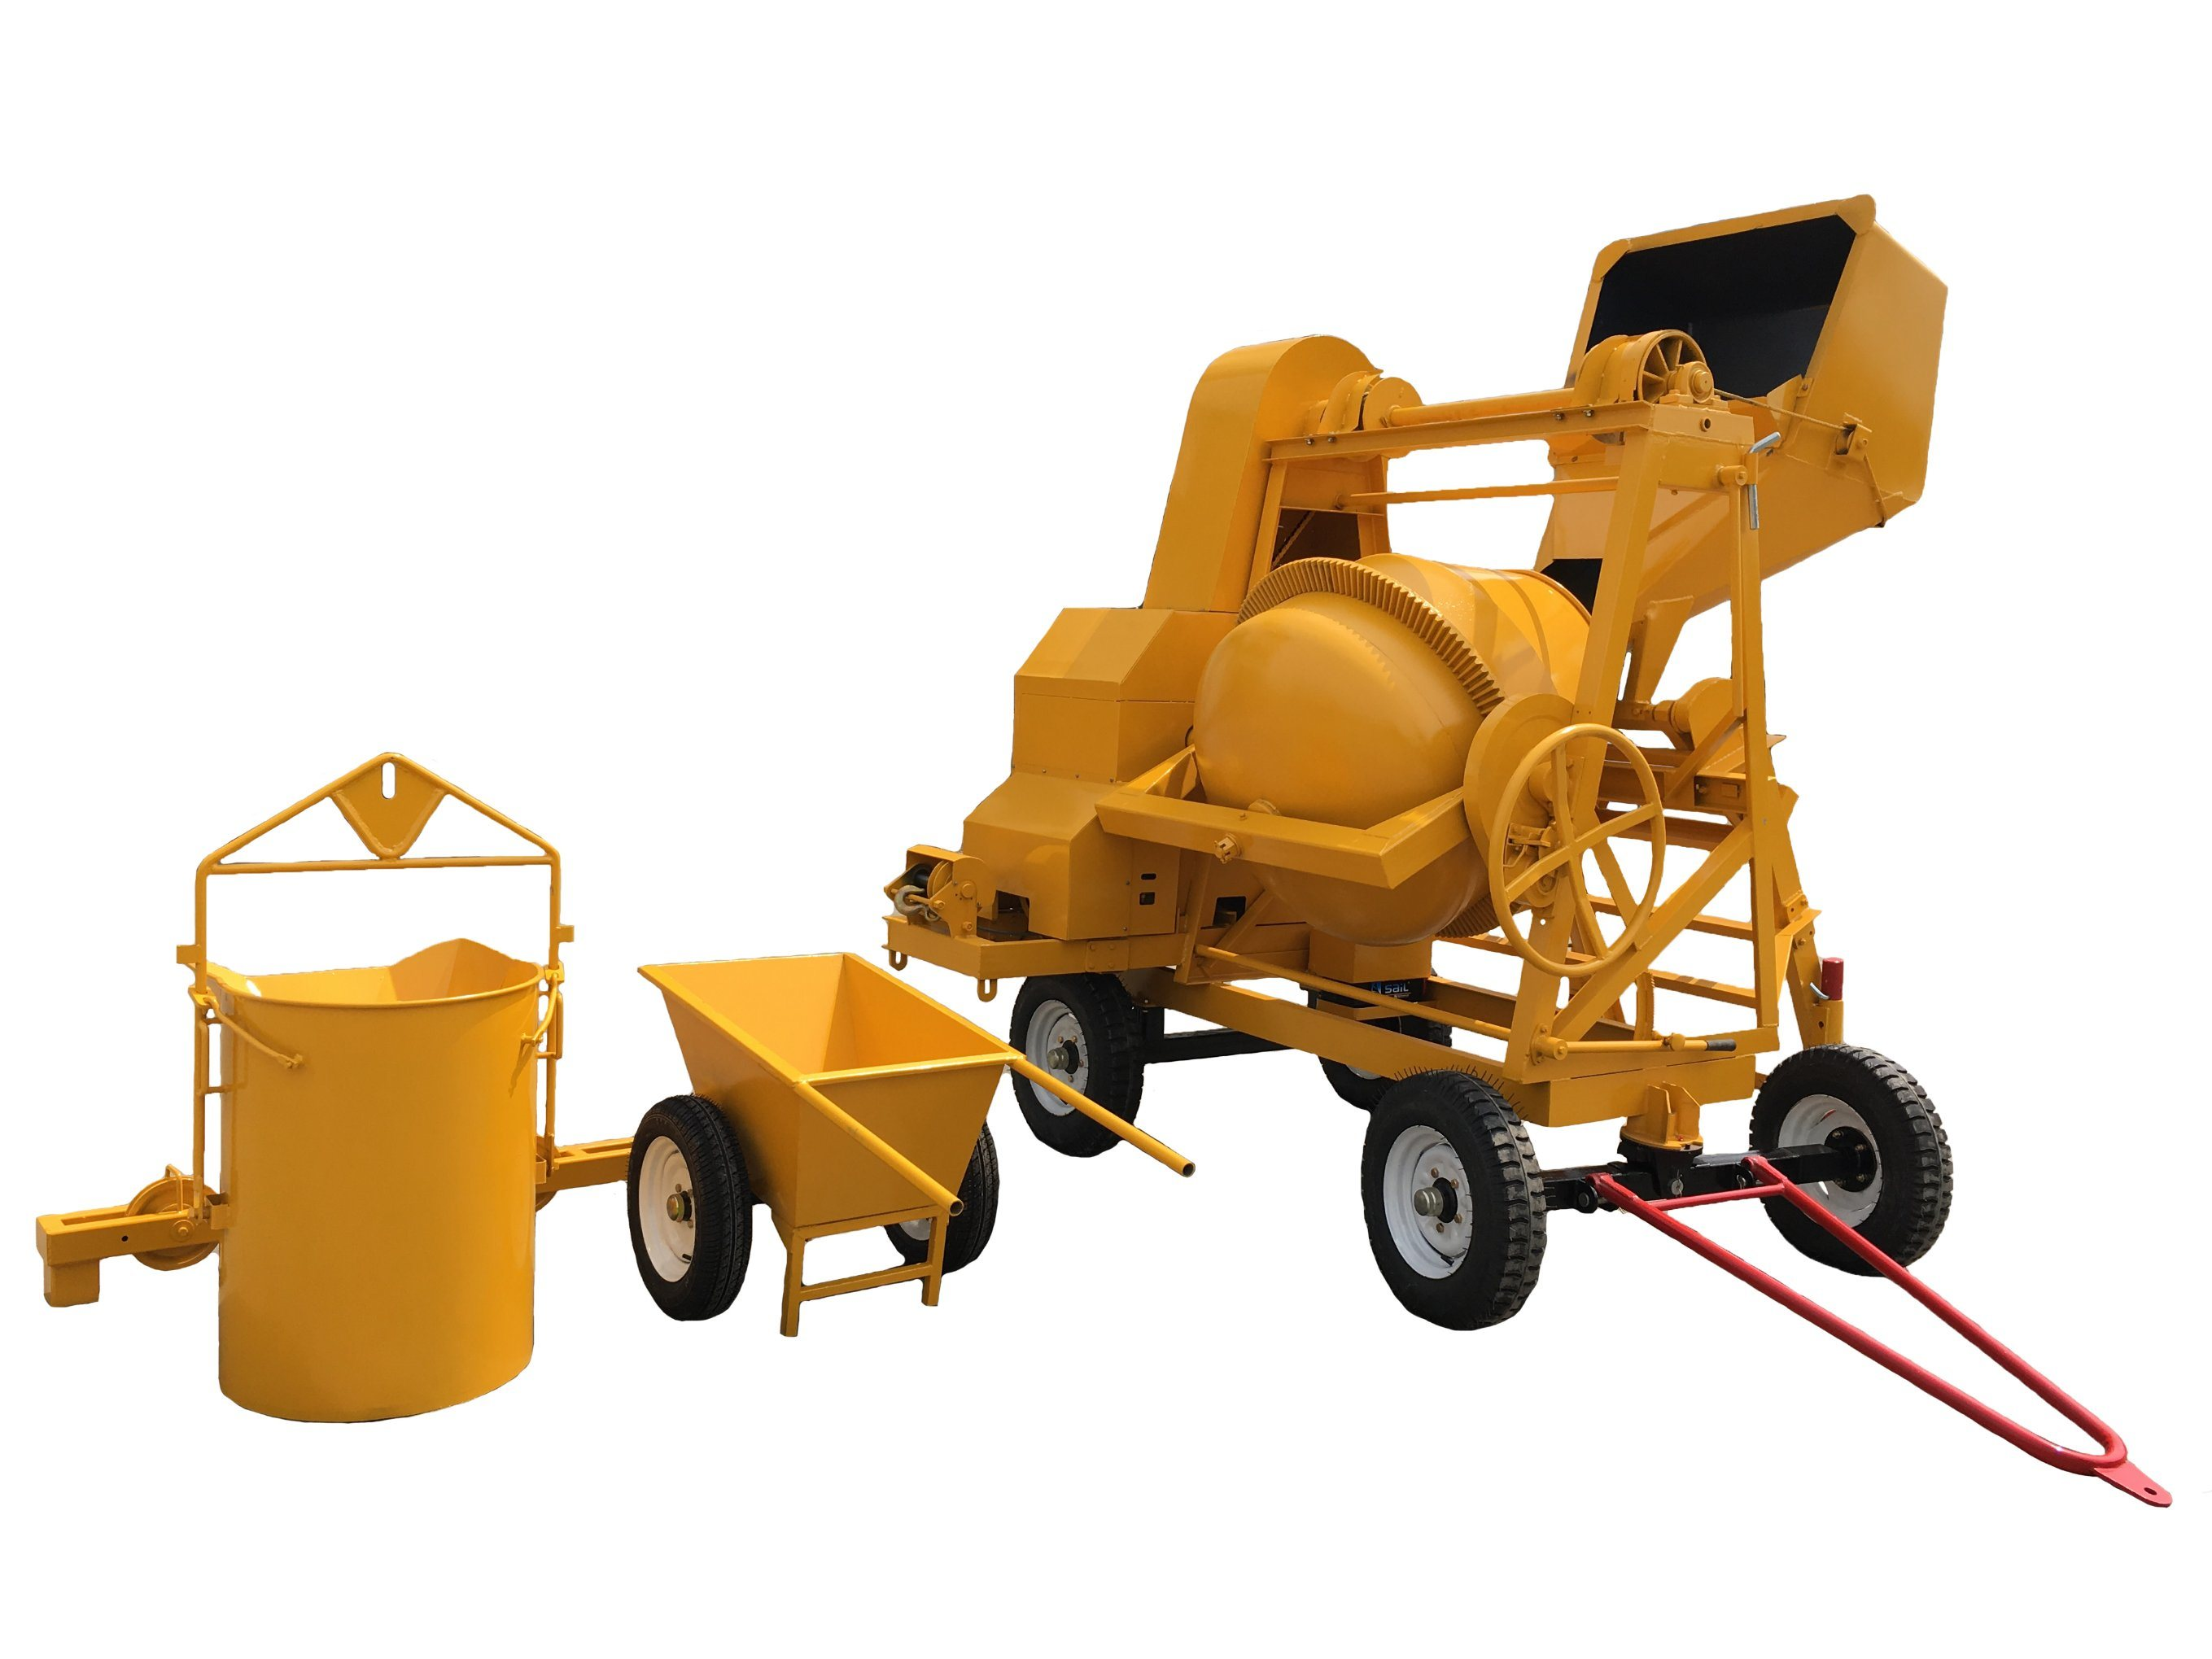 Topmac Brand 510 Lt Concrete Mixer with Winch